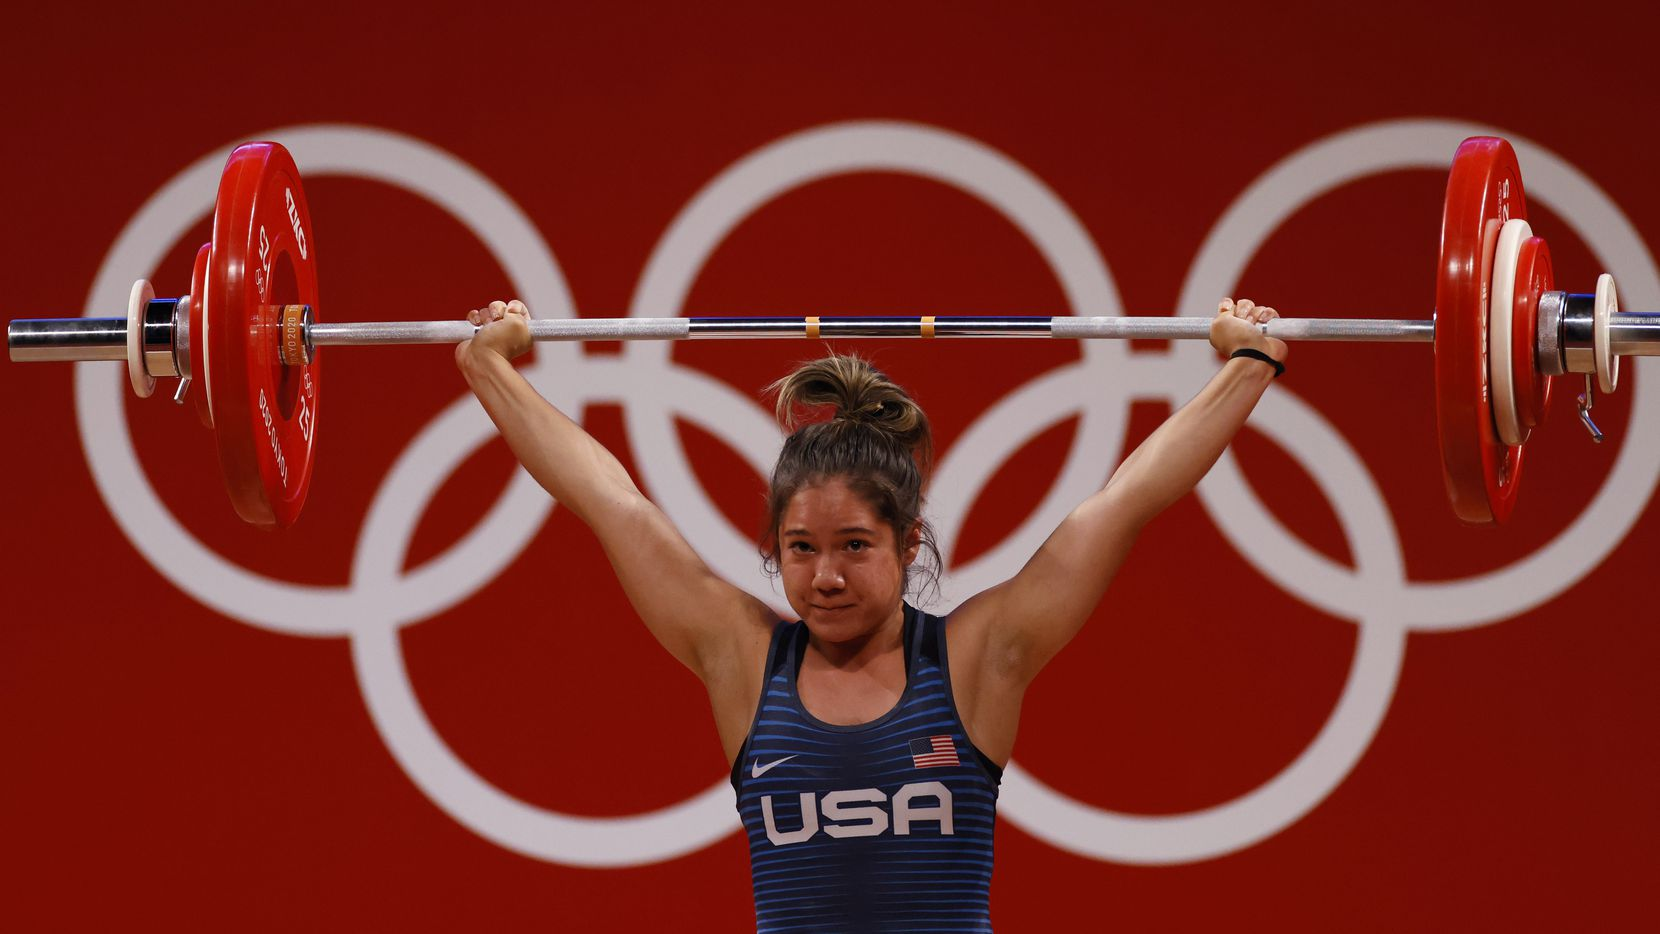 USA's Jourdan Delacruz competes in the first attempt of the snatch round during the women's 49 kg weightlifting final  during the postponed 2020 Tokyo Olympics at Tokyo International Forum on Saturday, July 24, 2021, in Tokyo, Japan. (Vernon Bryant/The Dallas Morning News)